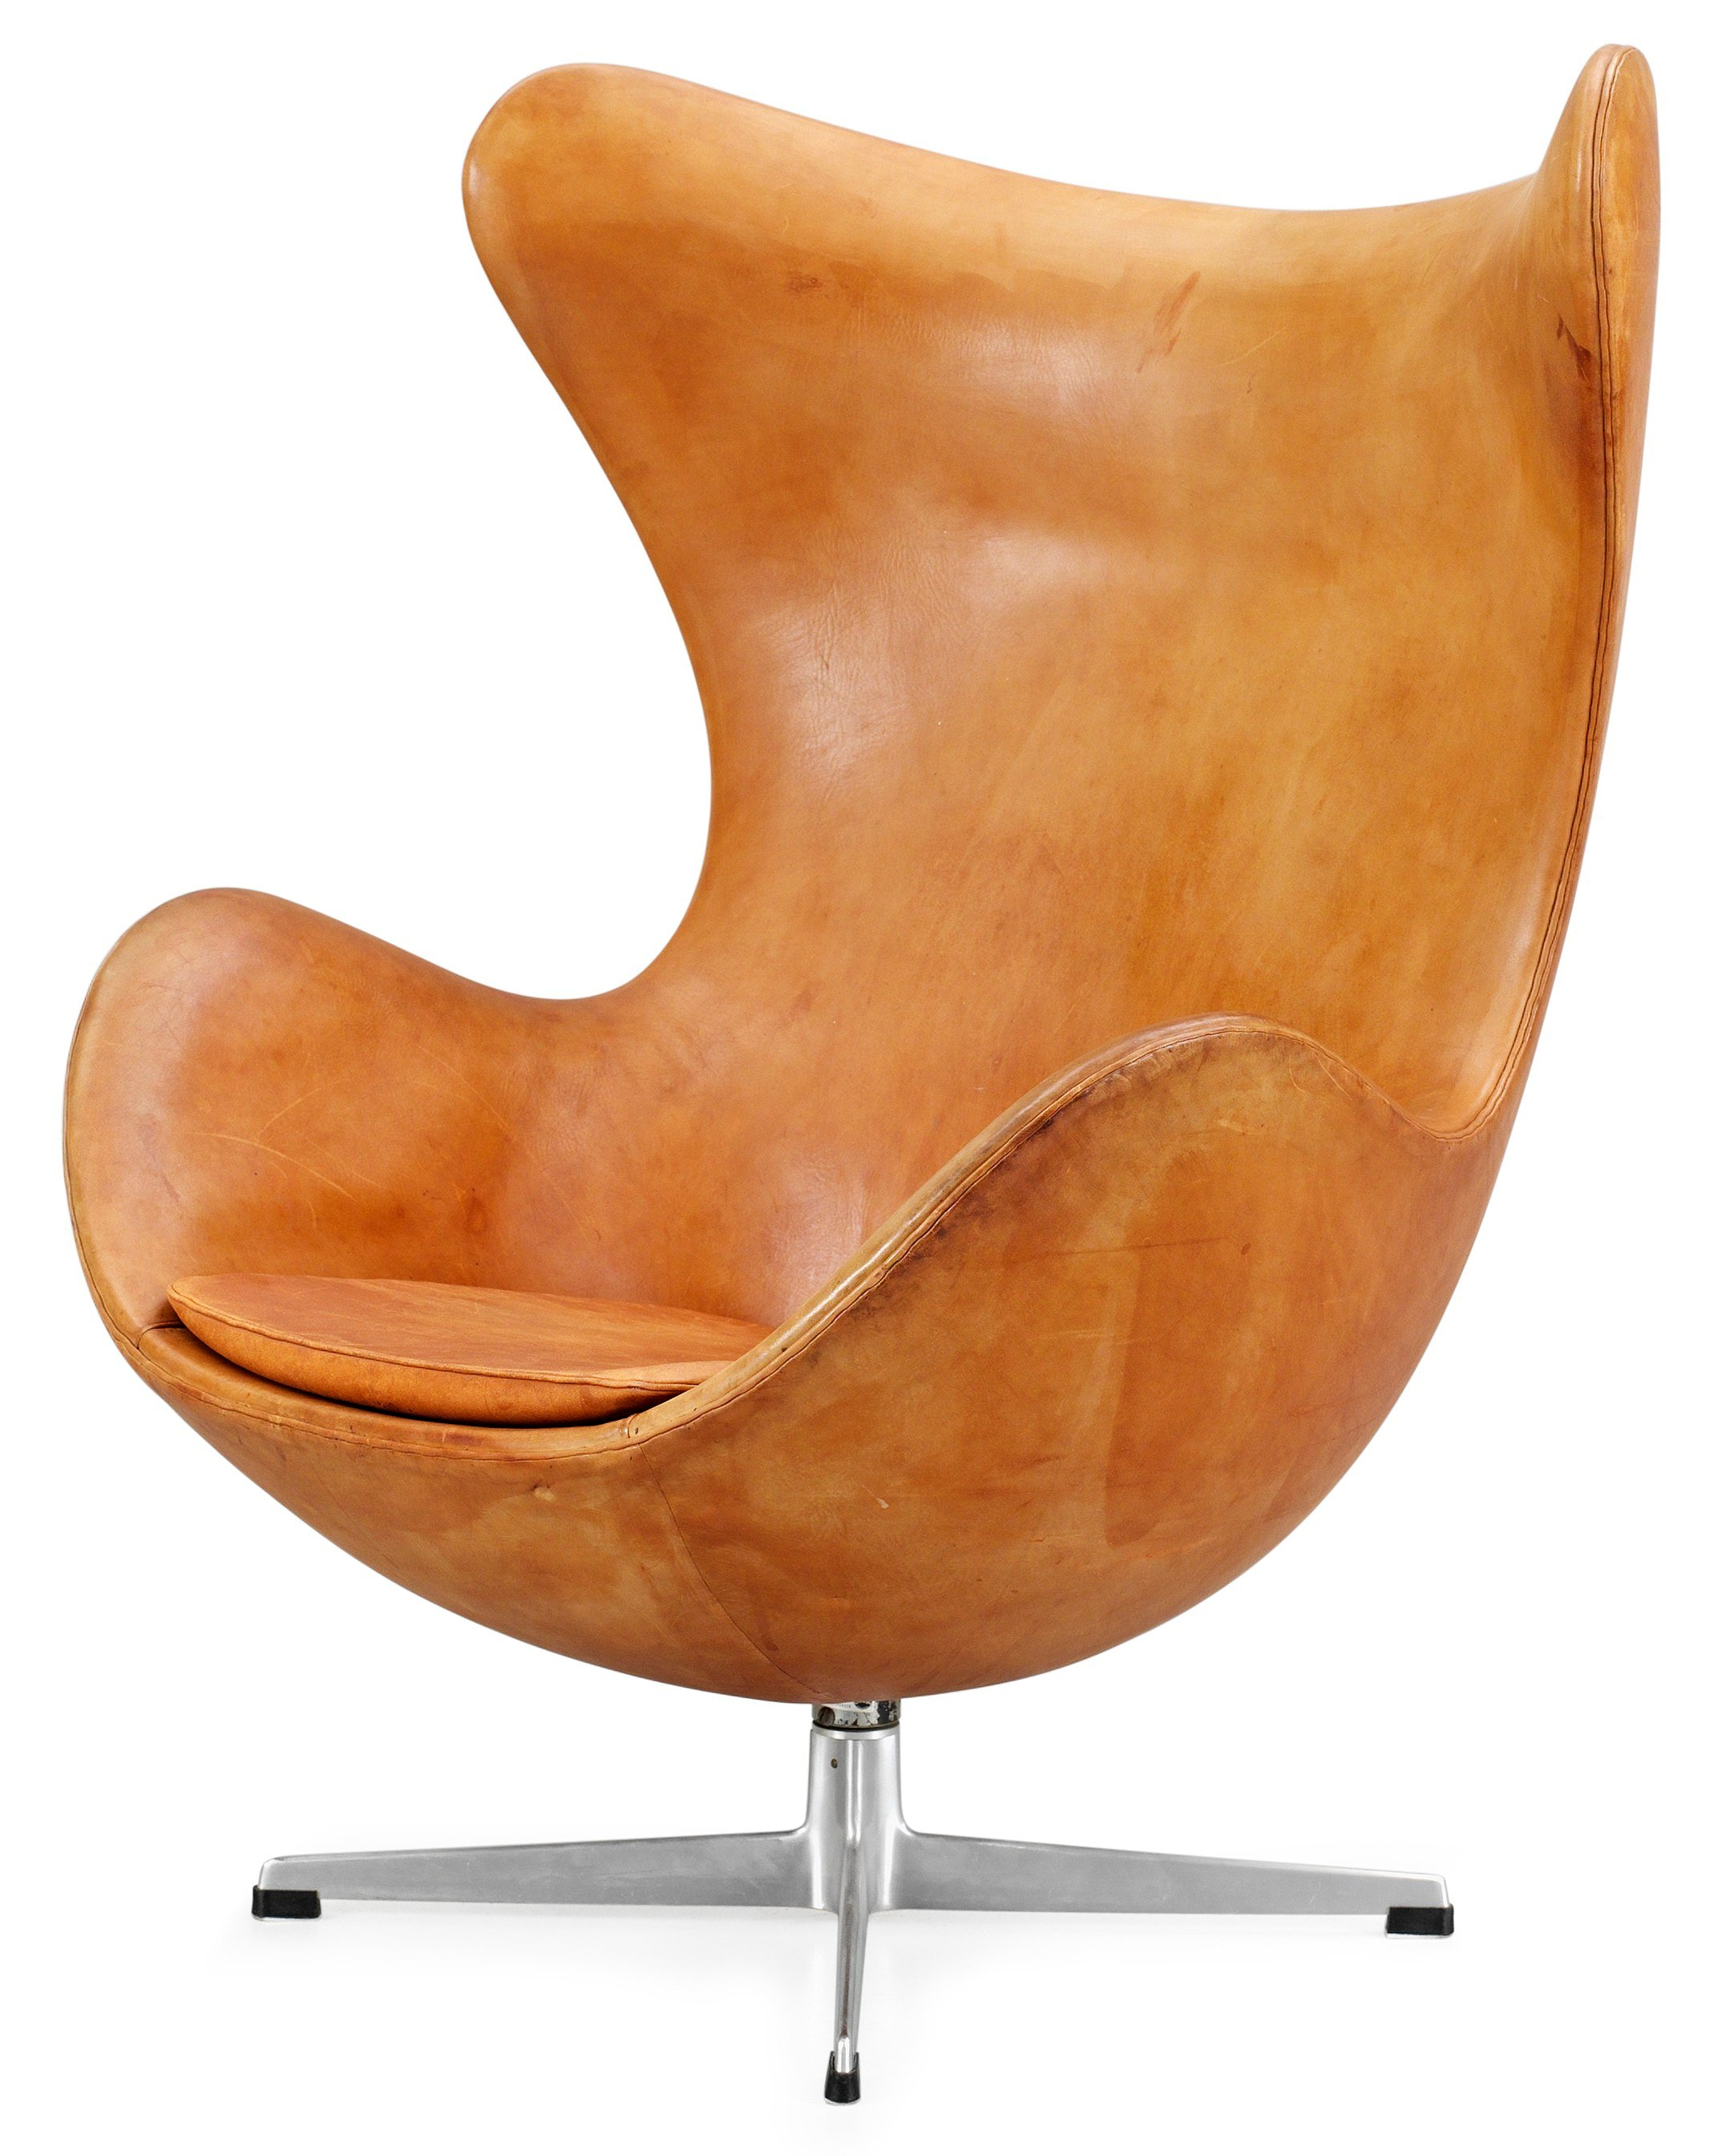 vinterior listings arne chair ottoman jacobsen and egg